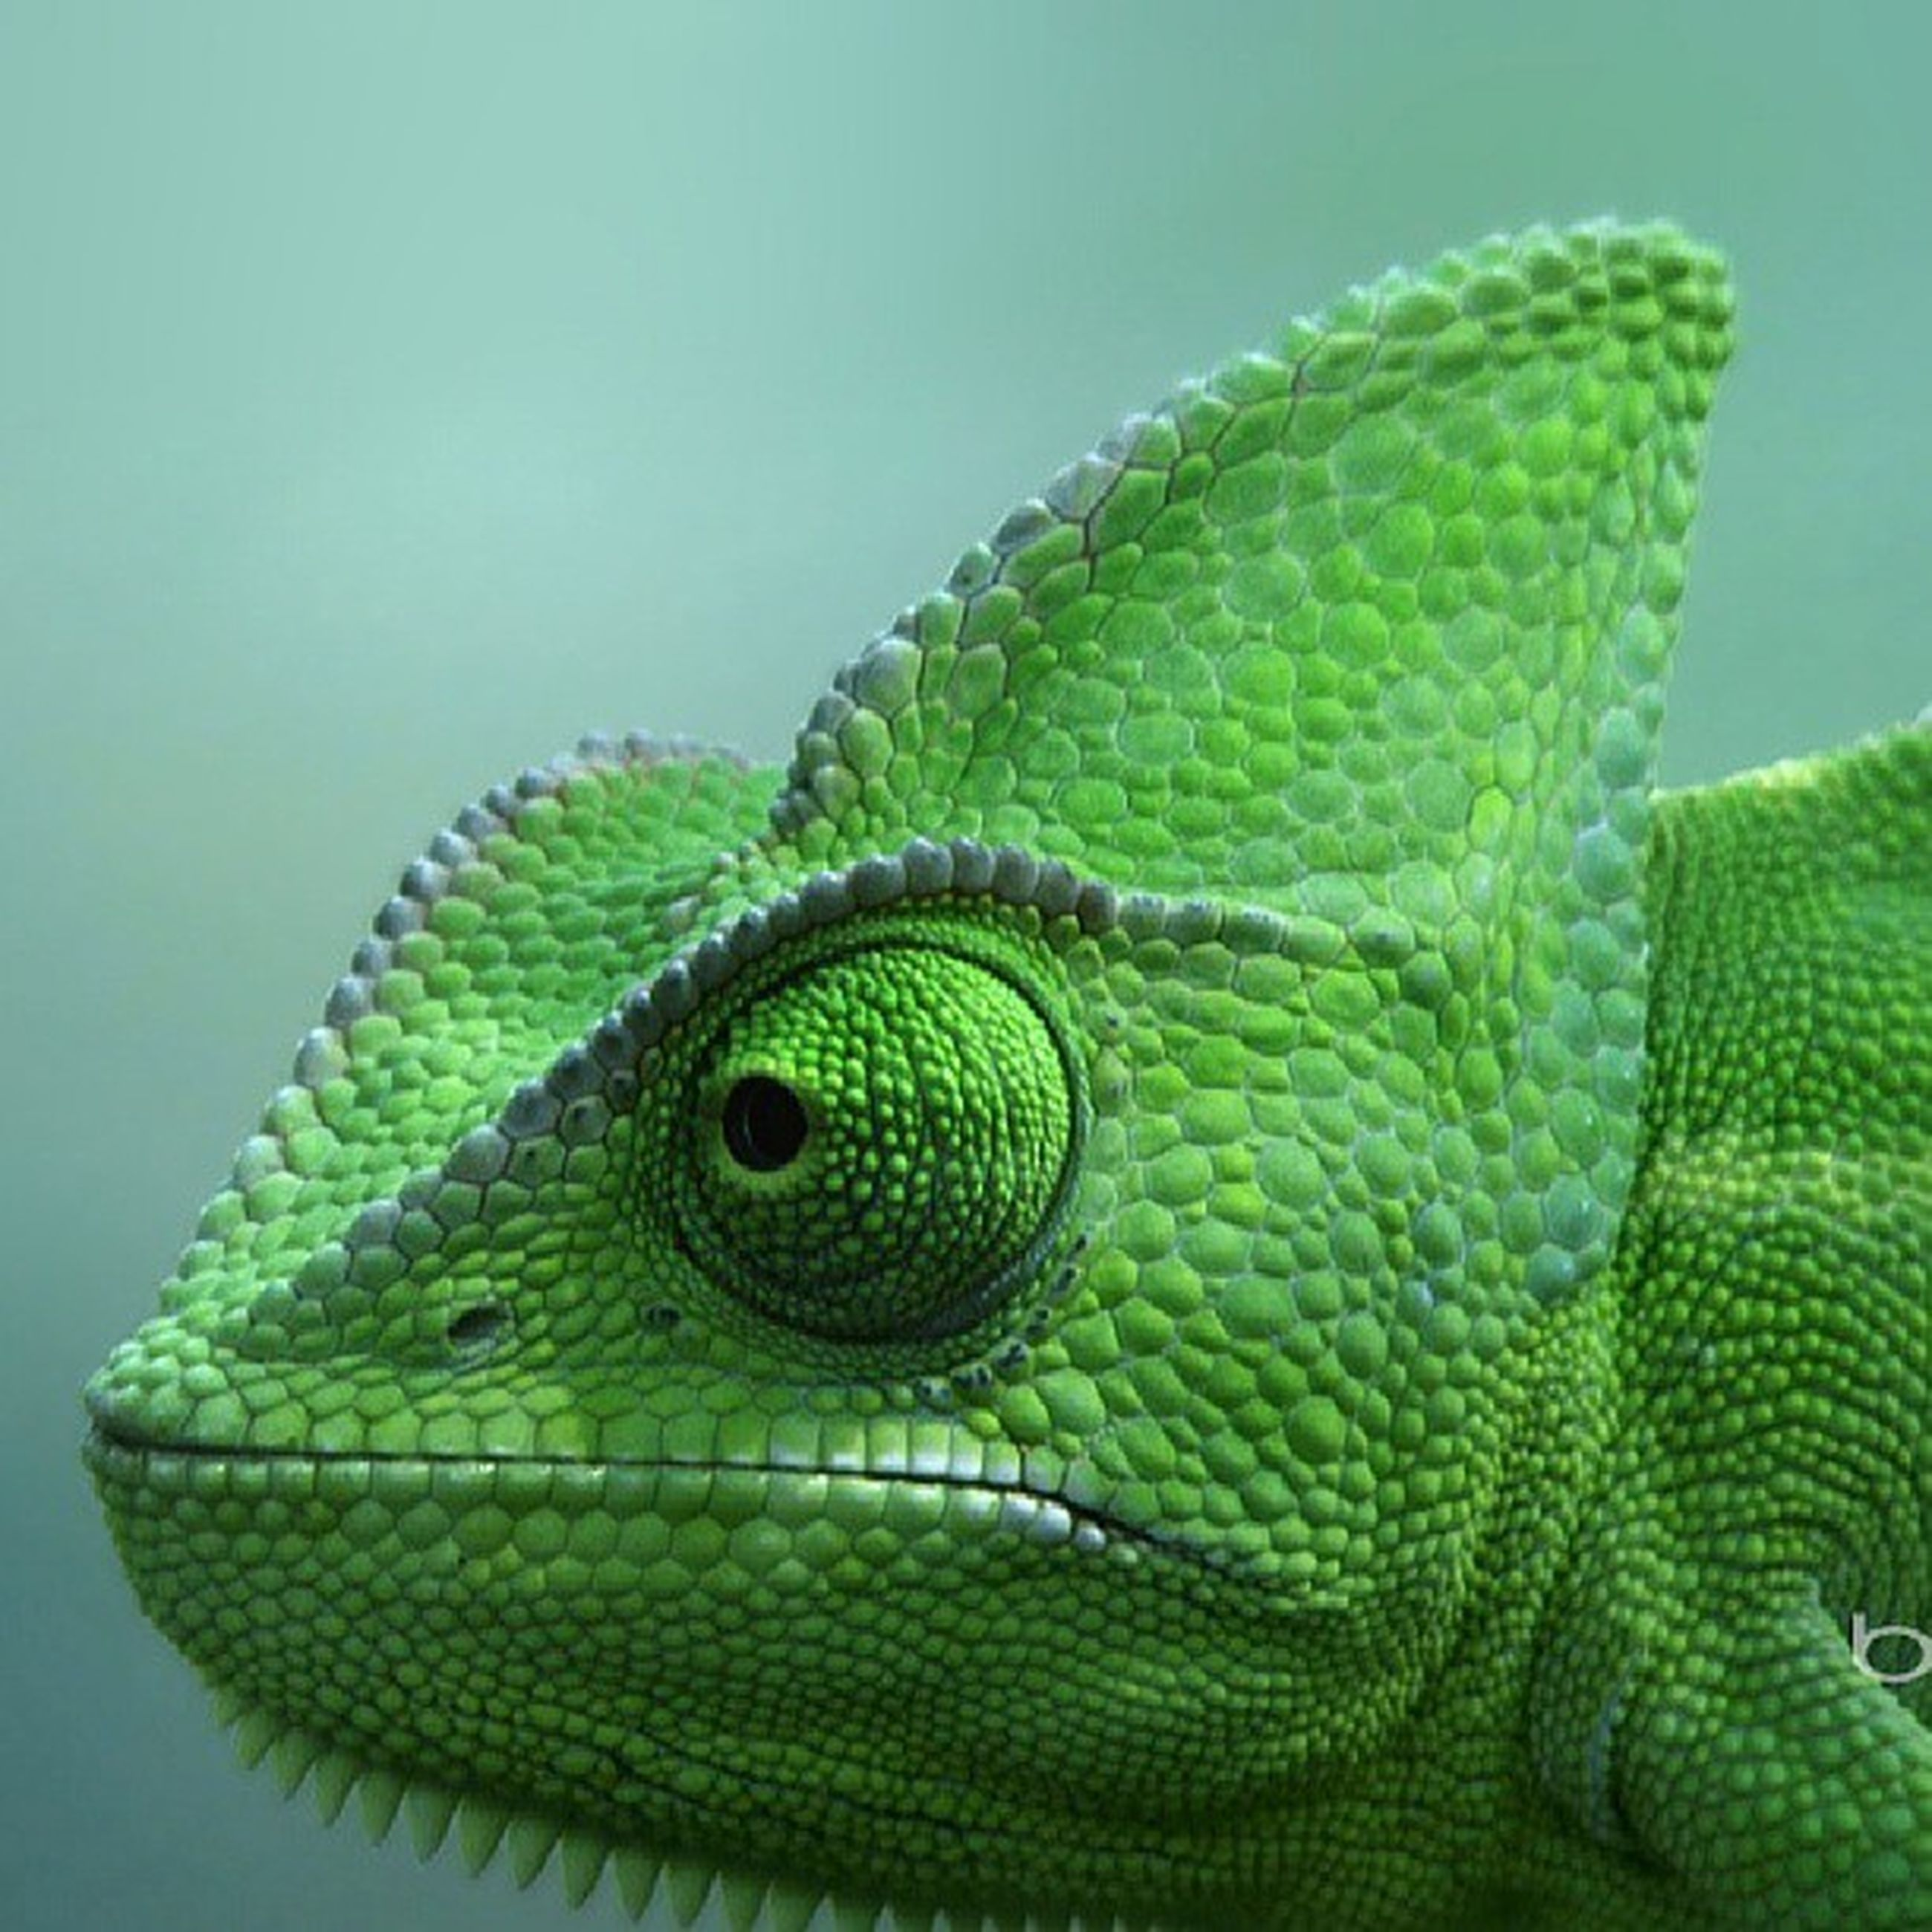 one animal, animal themes, animals in the wild, wildlife, close-up, green color, reptile, natural pattern, lizard, nature, green, beauty in nature, no people, animal head, animal markings, studio shot, day, snake, outdoors, focus on foreground